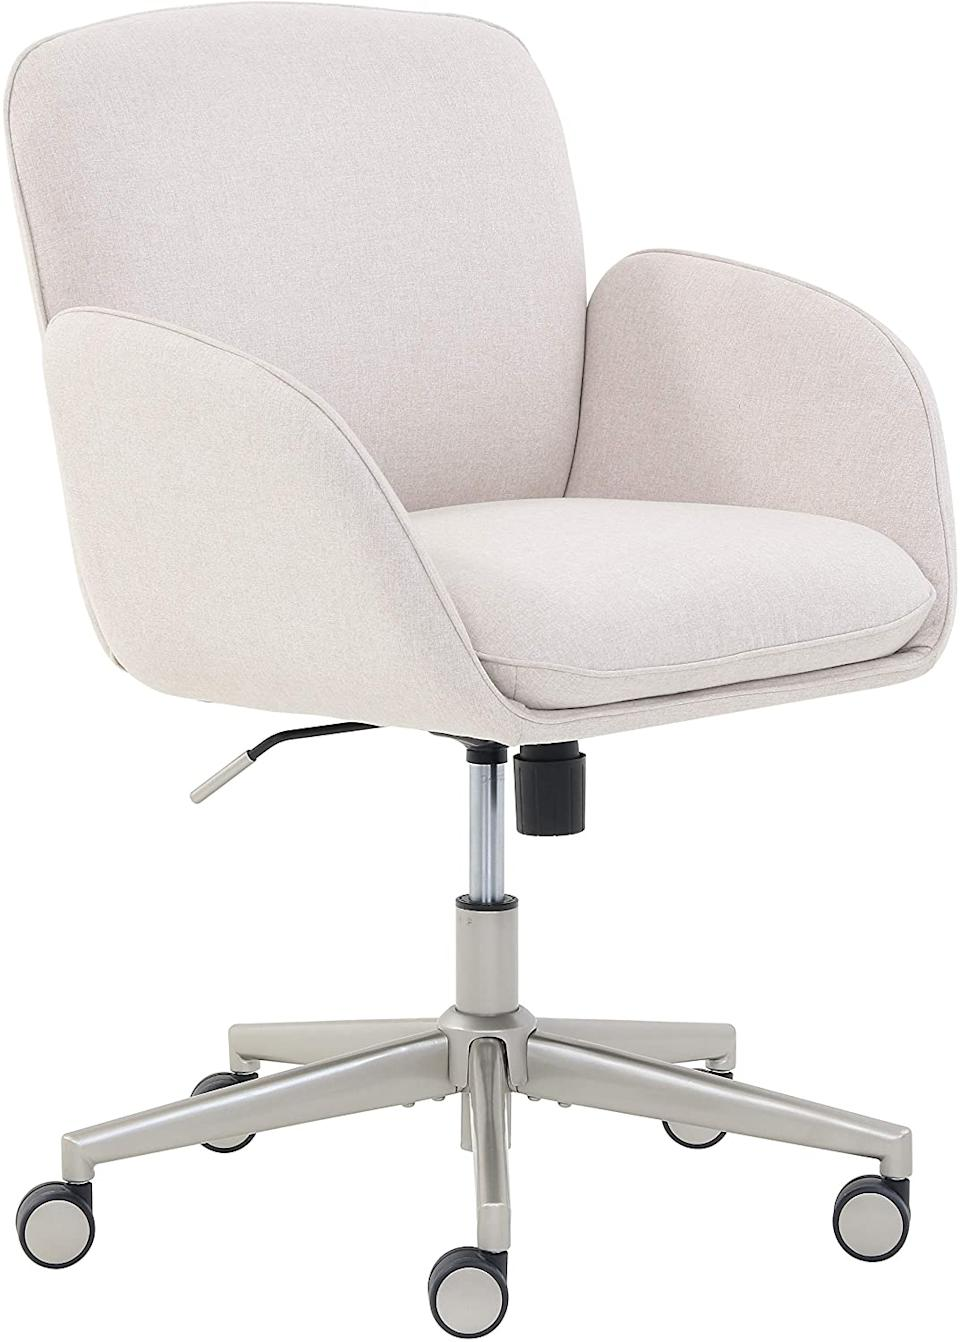 Rivet Modern Upholstered Swivel Task Chair (Photo via Amazon)